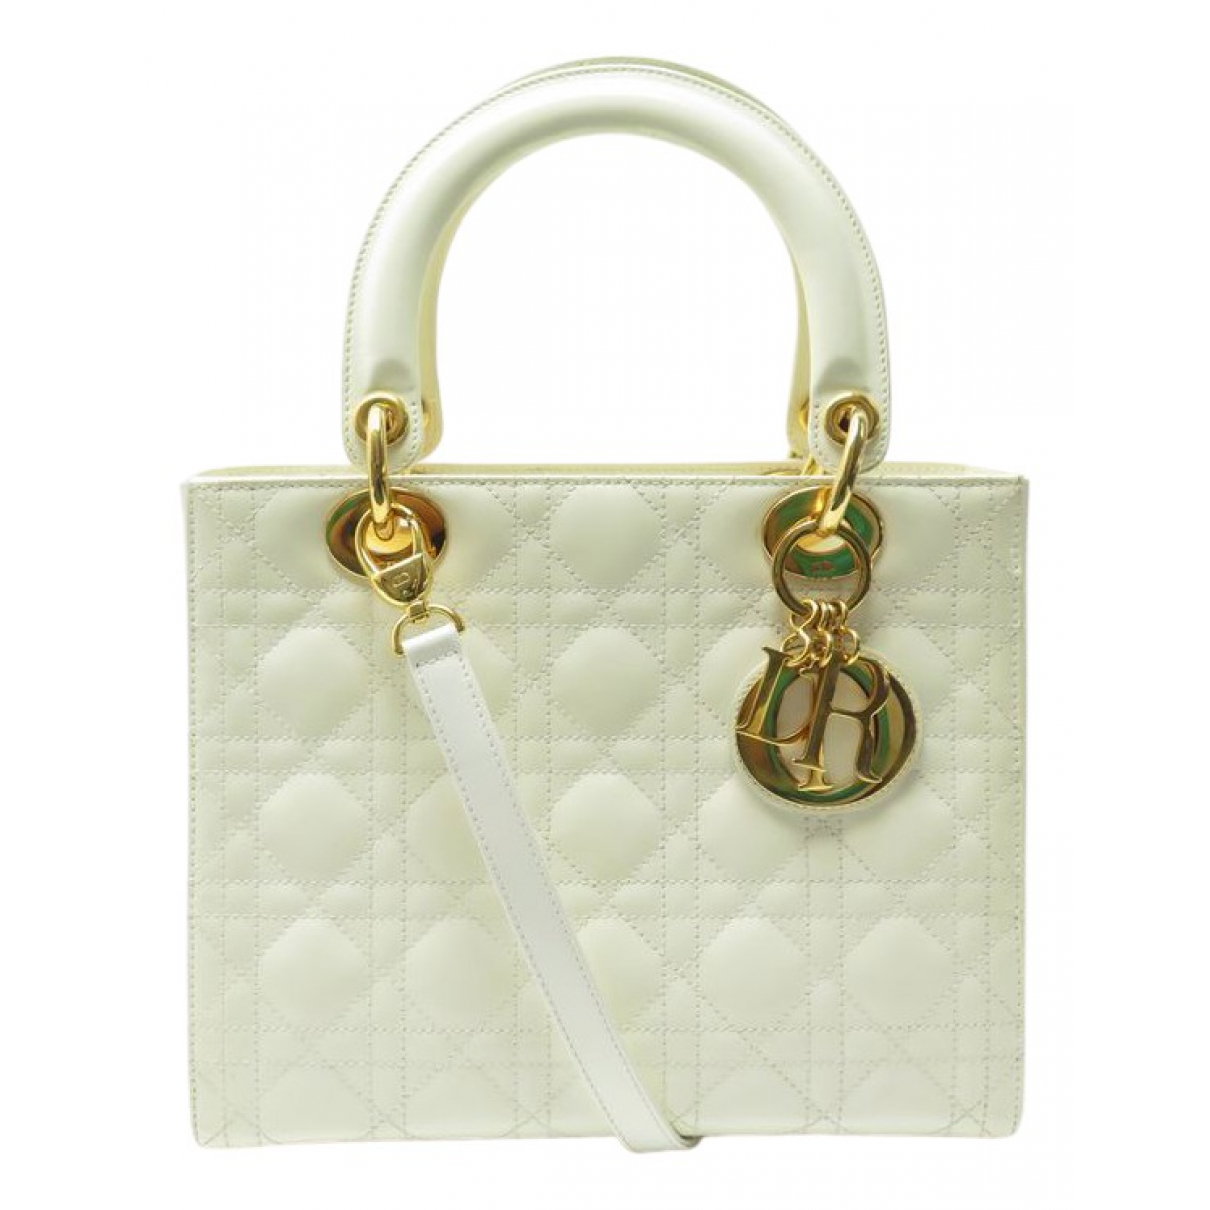 Dior Lady Dior White Patent leather handbag for Women \N